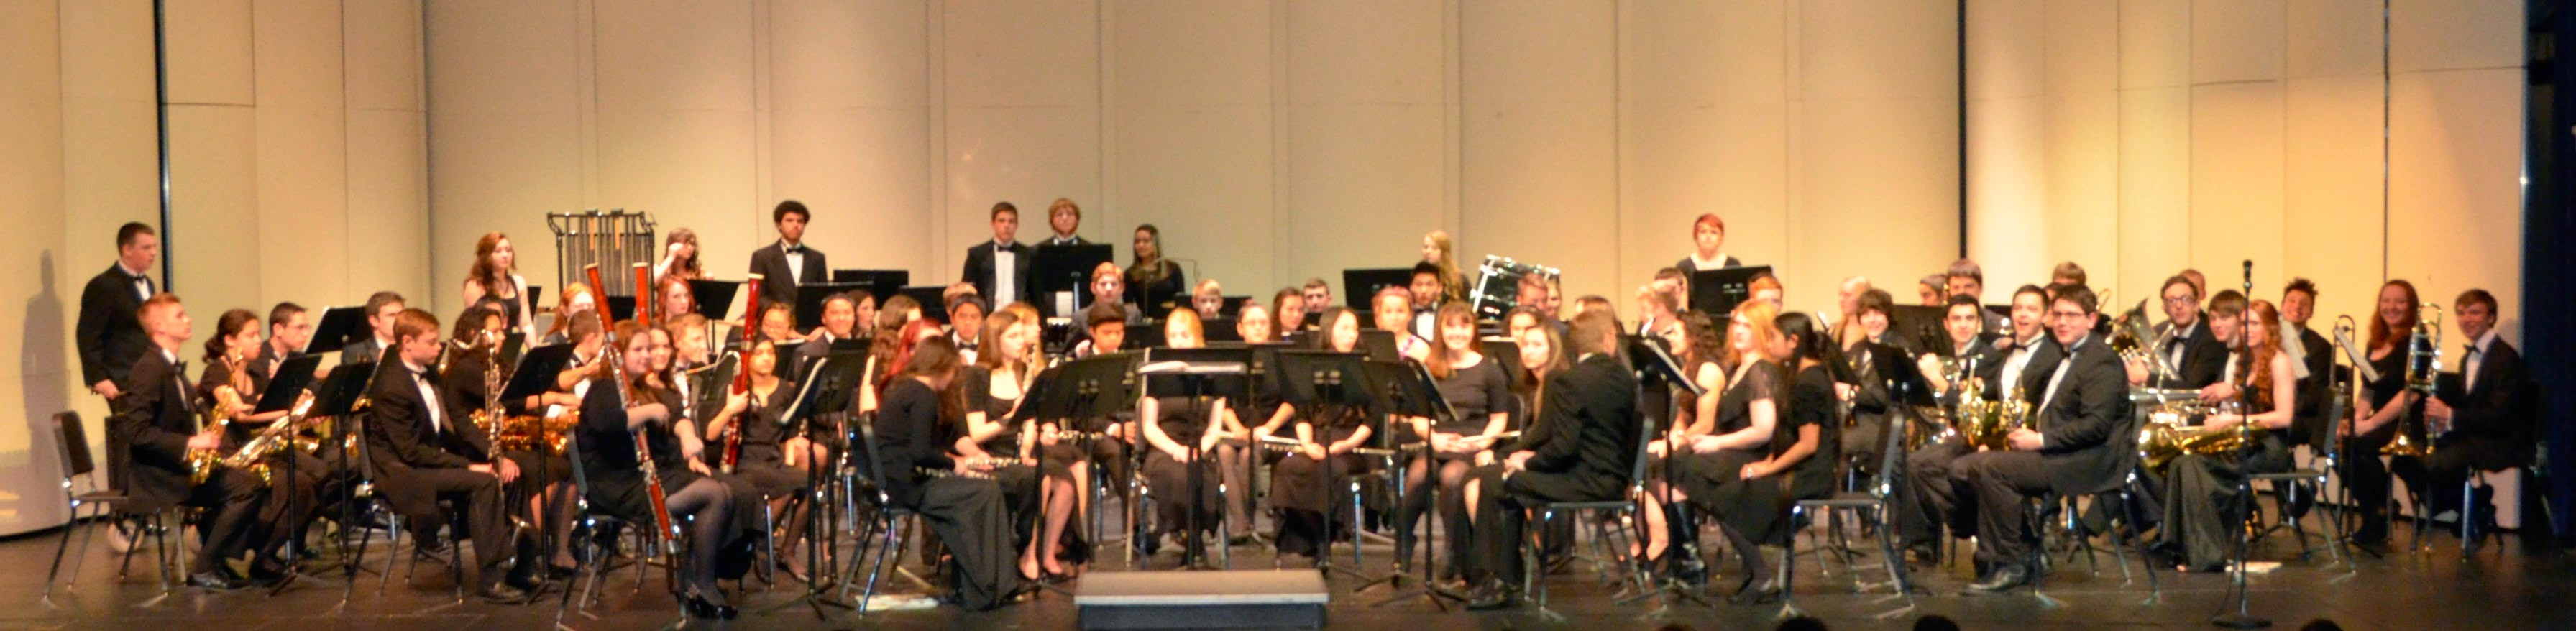 Symphonic Band Spring 2014 Concert